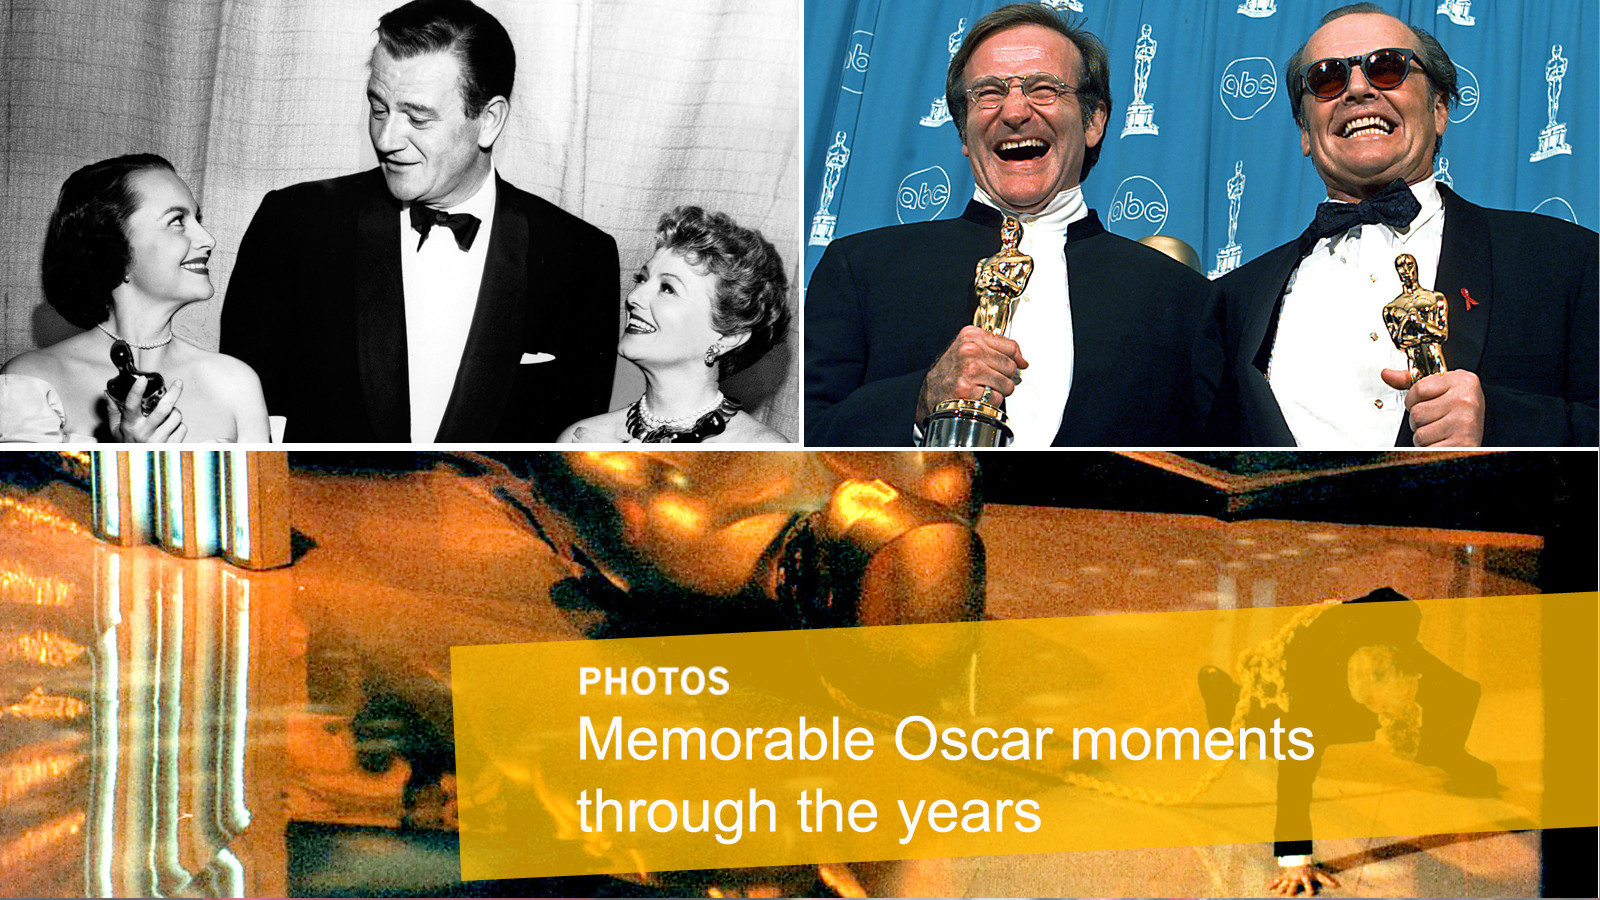 a history of the oscars Even before receiving her 21st oscar nomination last month—a best-actress nod for the post—meryl streep made history as the most-nominated performer in the history of the academy throughout .